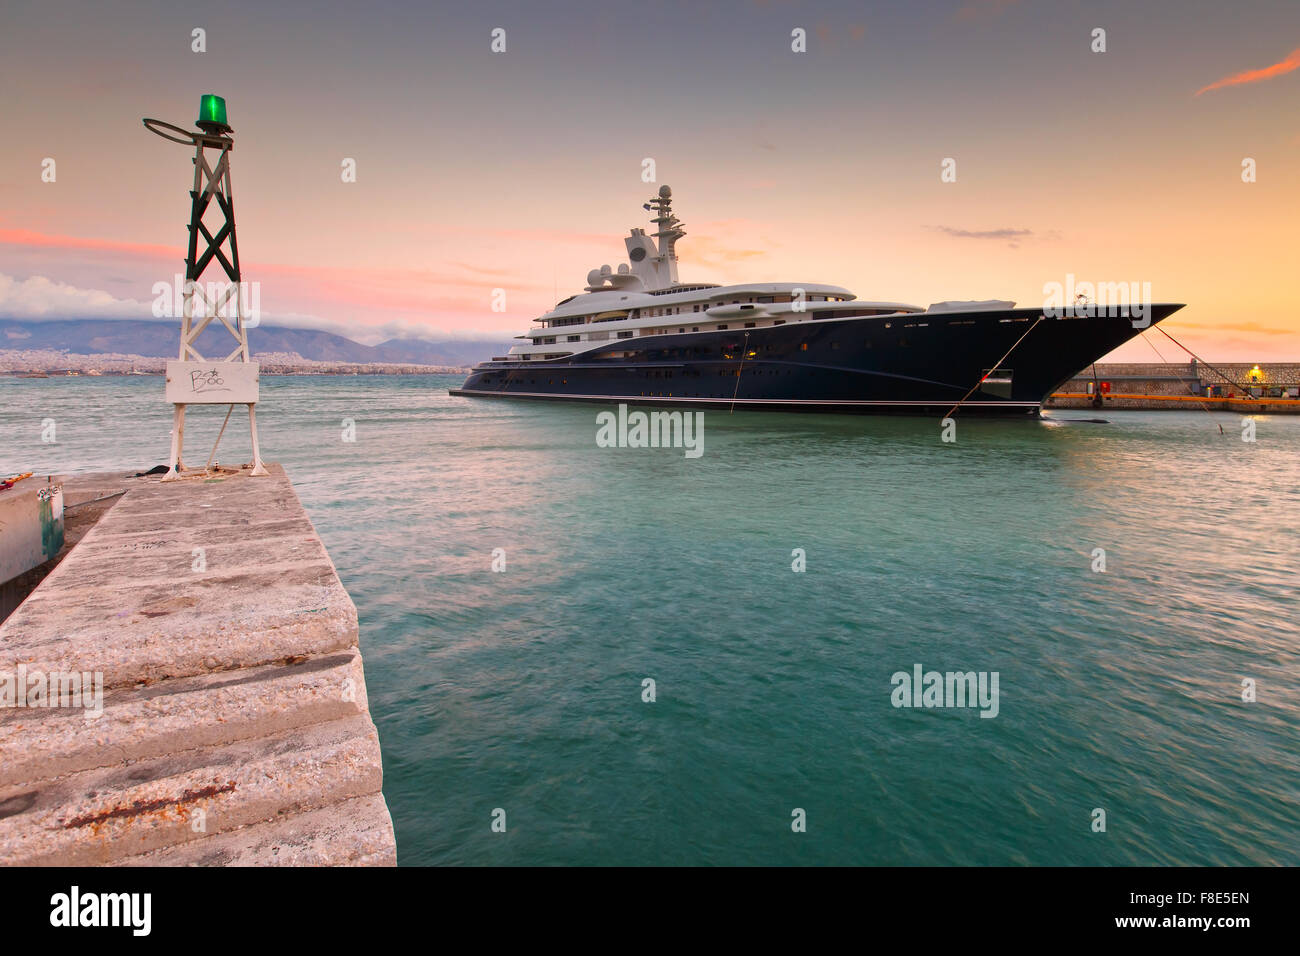 Luxurious yacht in the mouth of Zea Marina in Athens, Greece - Stock Image